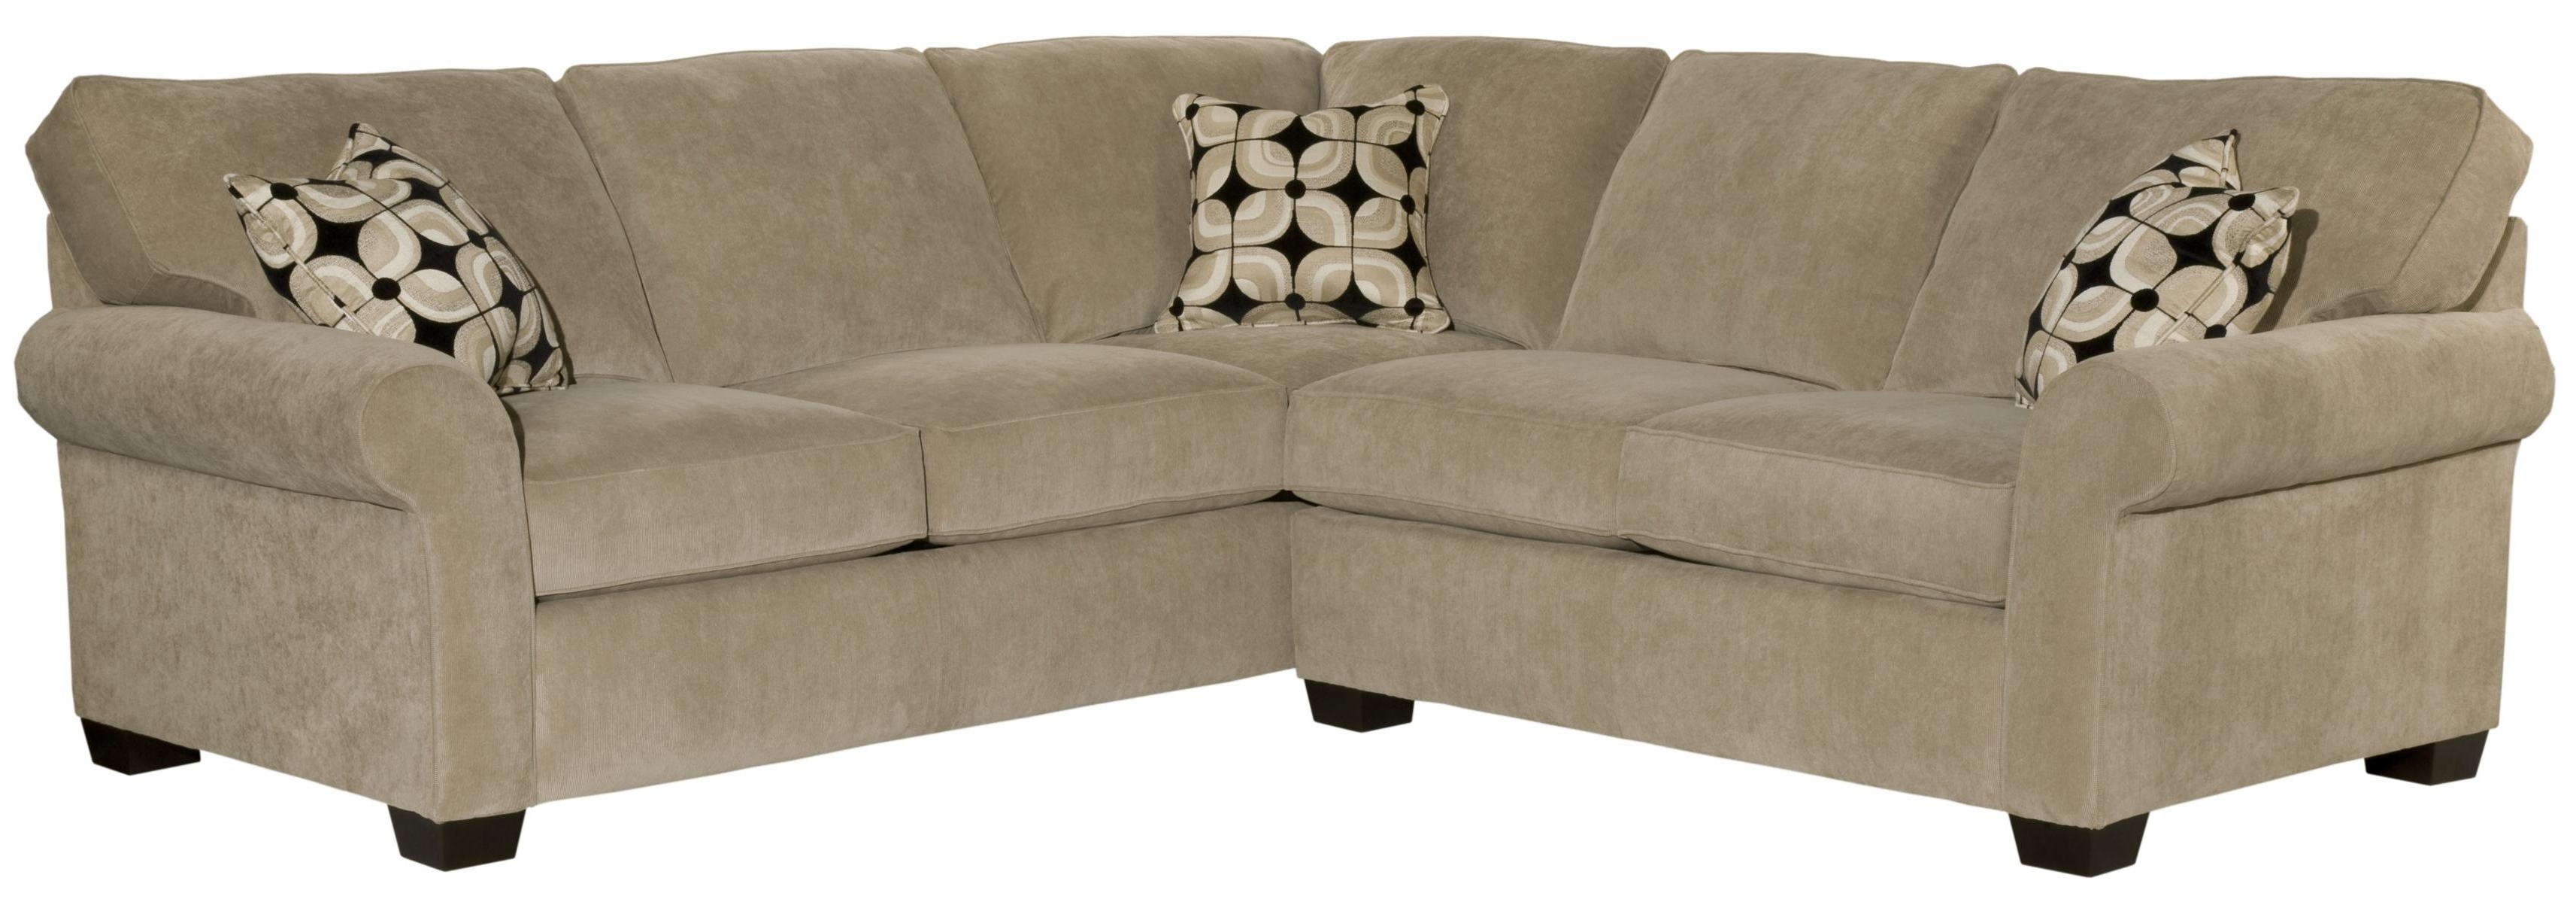 Broyhill Sectional Sofas Within Most Popular Broyhill Furniture Ethan Two Piece Sectional With Corner Sofa (View 11 of 20)